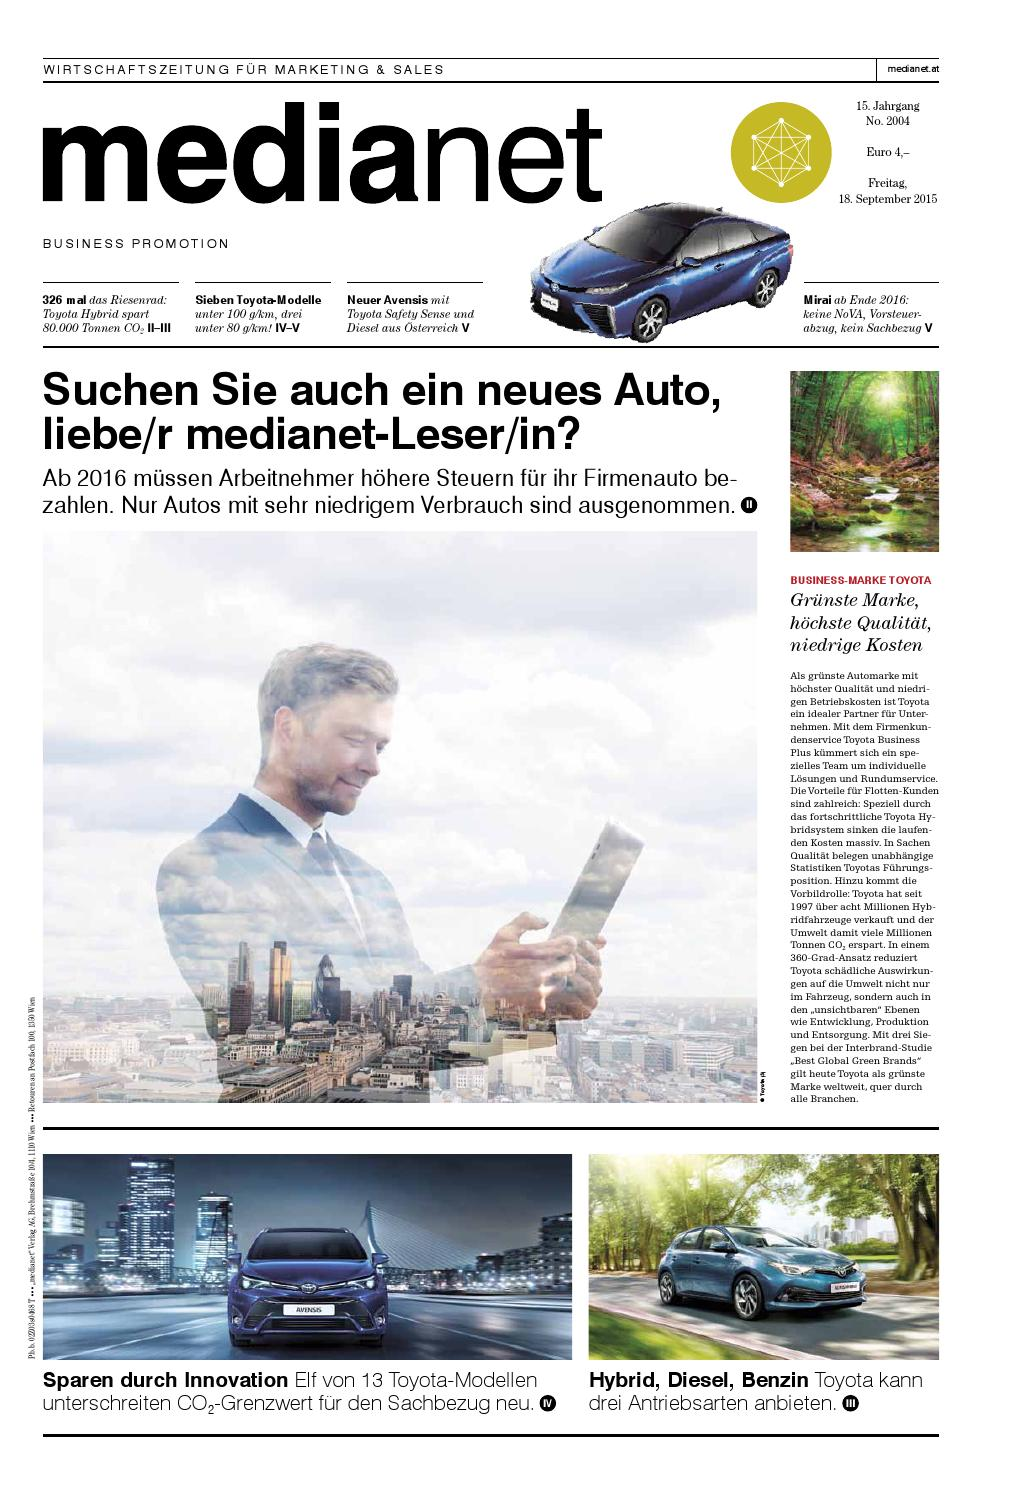 medianet 1809 by medianet - issuu